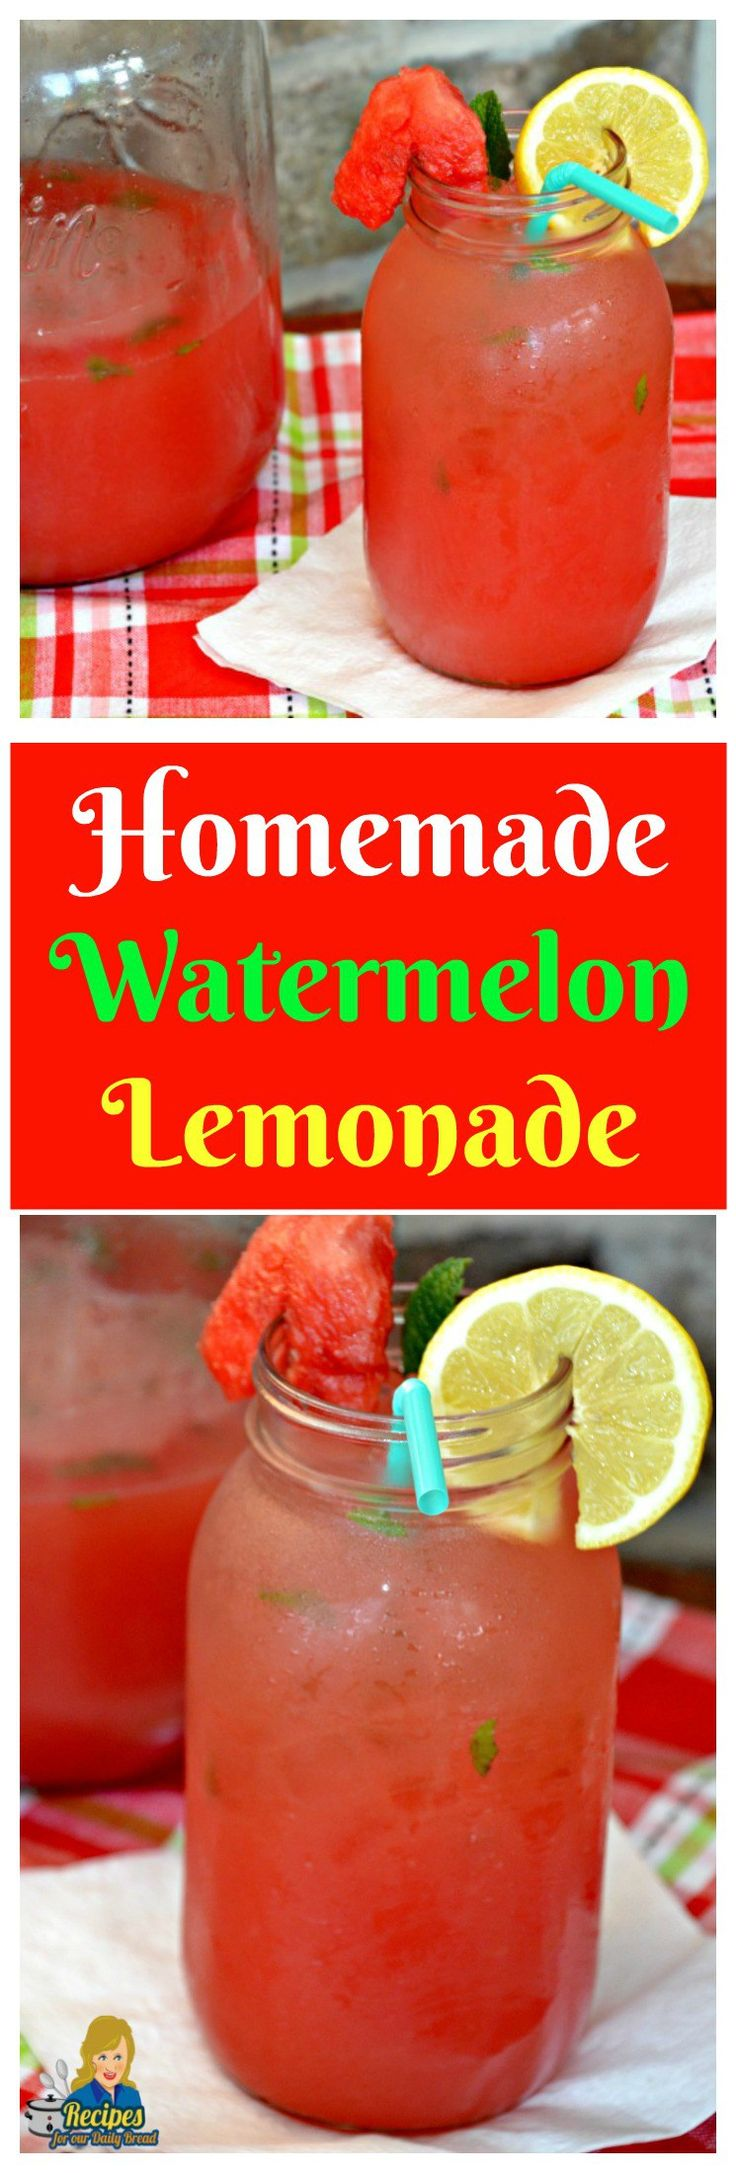 HOMEMADE WATERMELON LEMONADE  Summer is finally here.  Cool off with this simple homemade Southern Watermelon Lemonade.  Made with freshly squeezed lemons and watermelon.   You Should See full recipe here: http://recipesforourdailybread.com/homemade-water (alcoholic desserts simple)